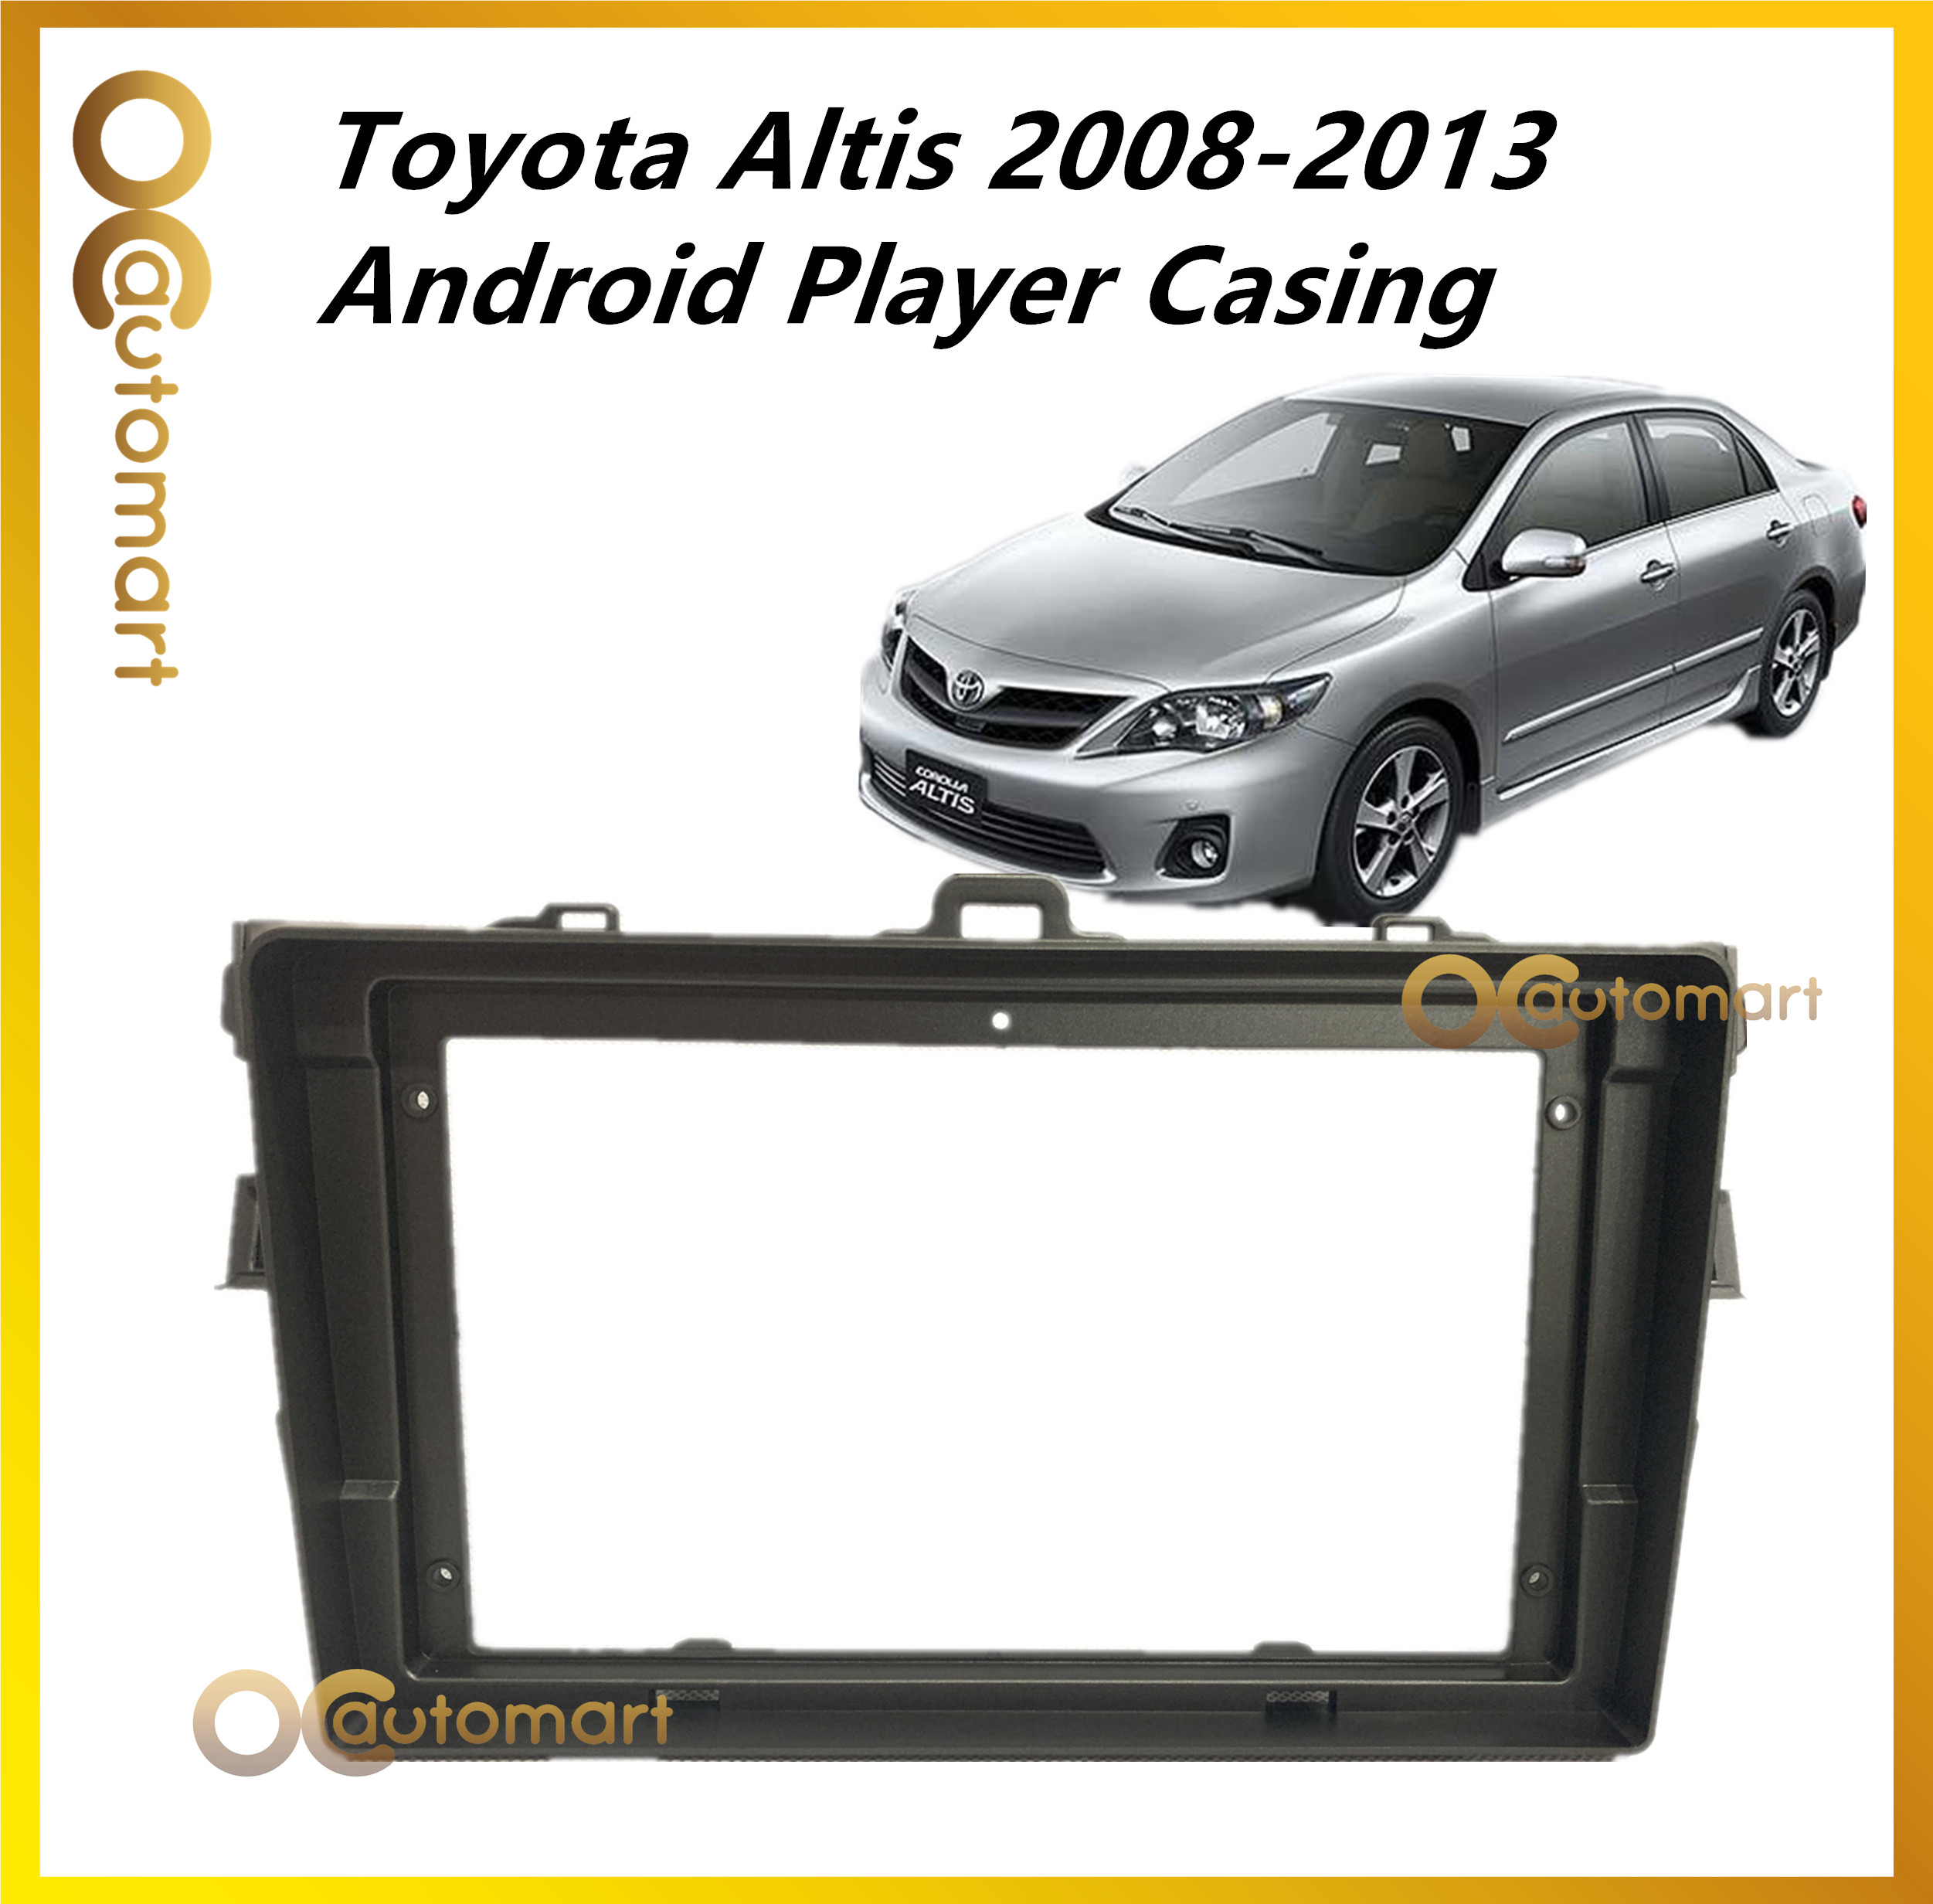 Toyota Altis 2008 - 2013 Android Player Casing 9 inch